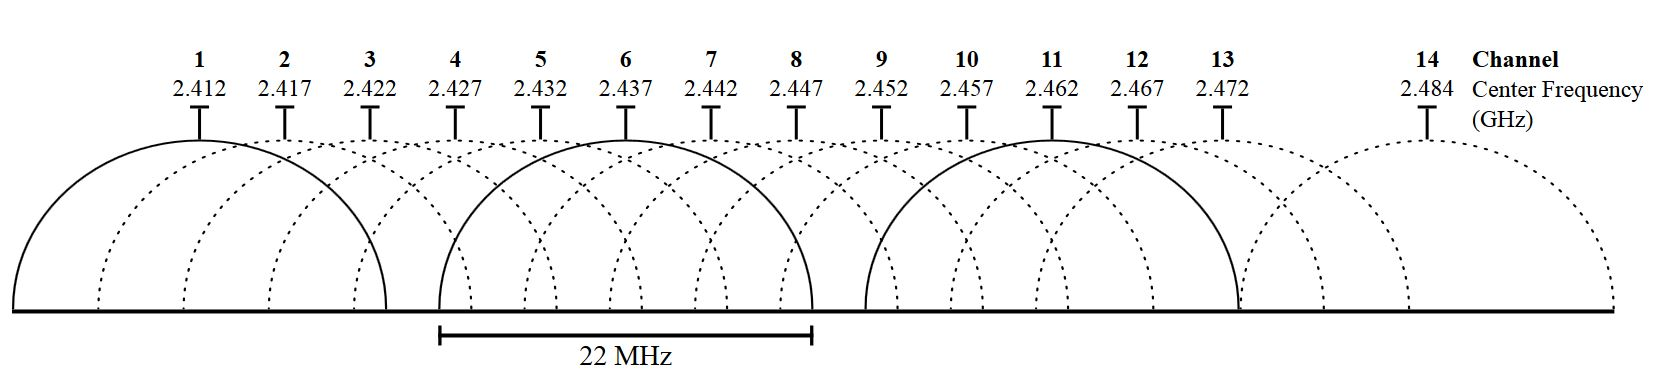 2.4 Ghz Channels